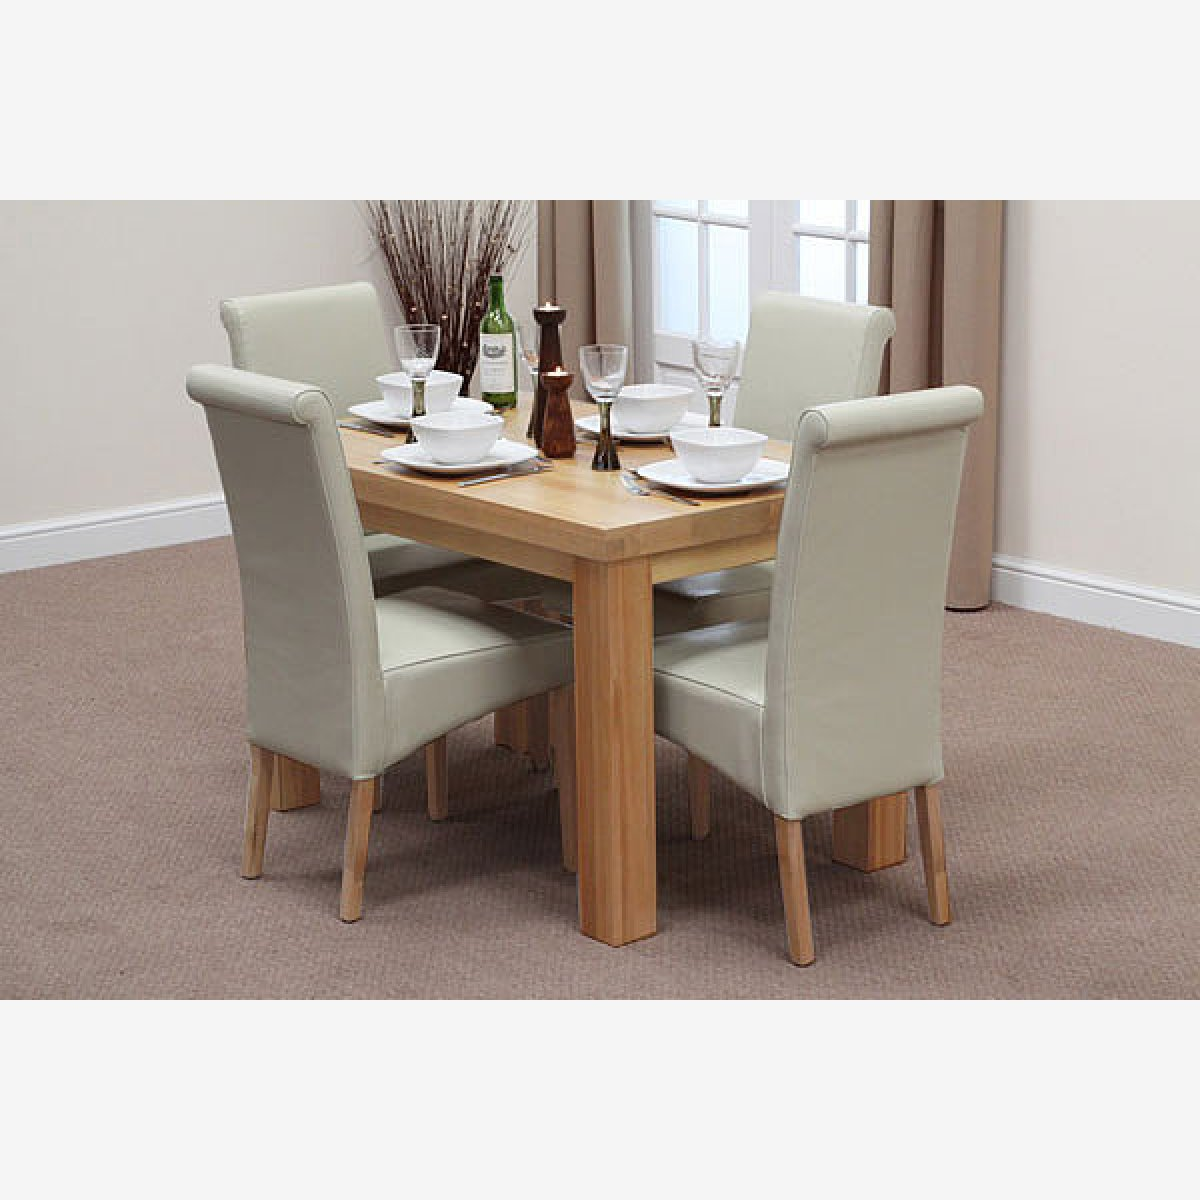 Fresco 4ft Solid Oak Dining Table 4 Cream Leather Scroll